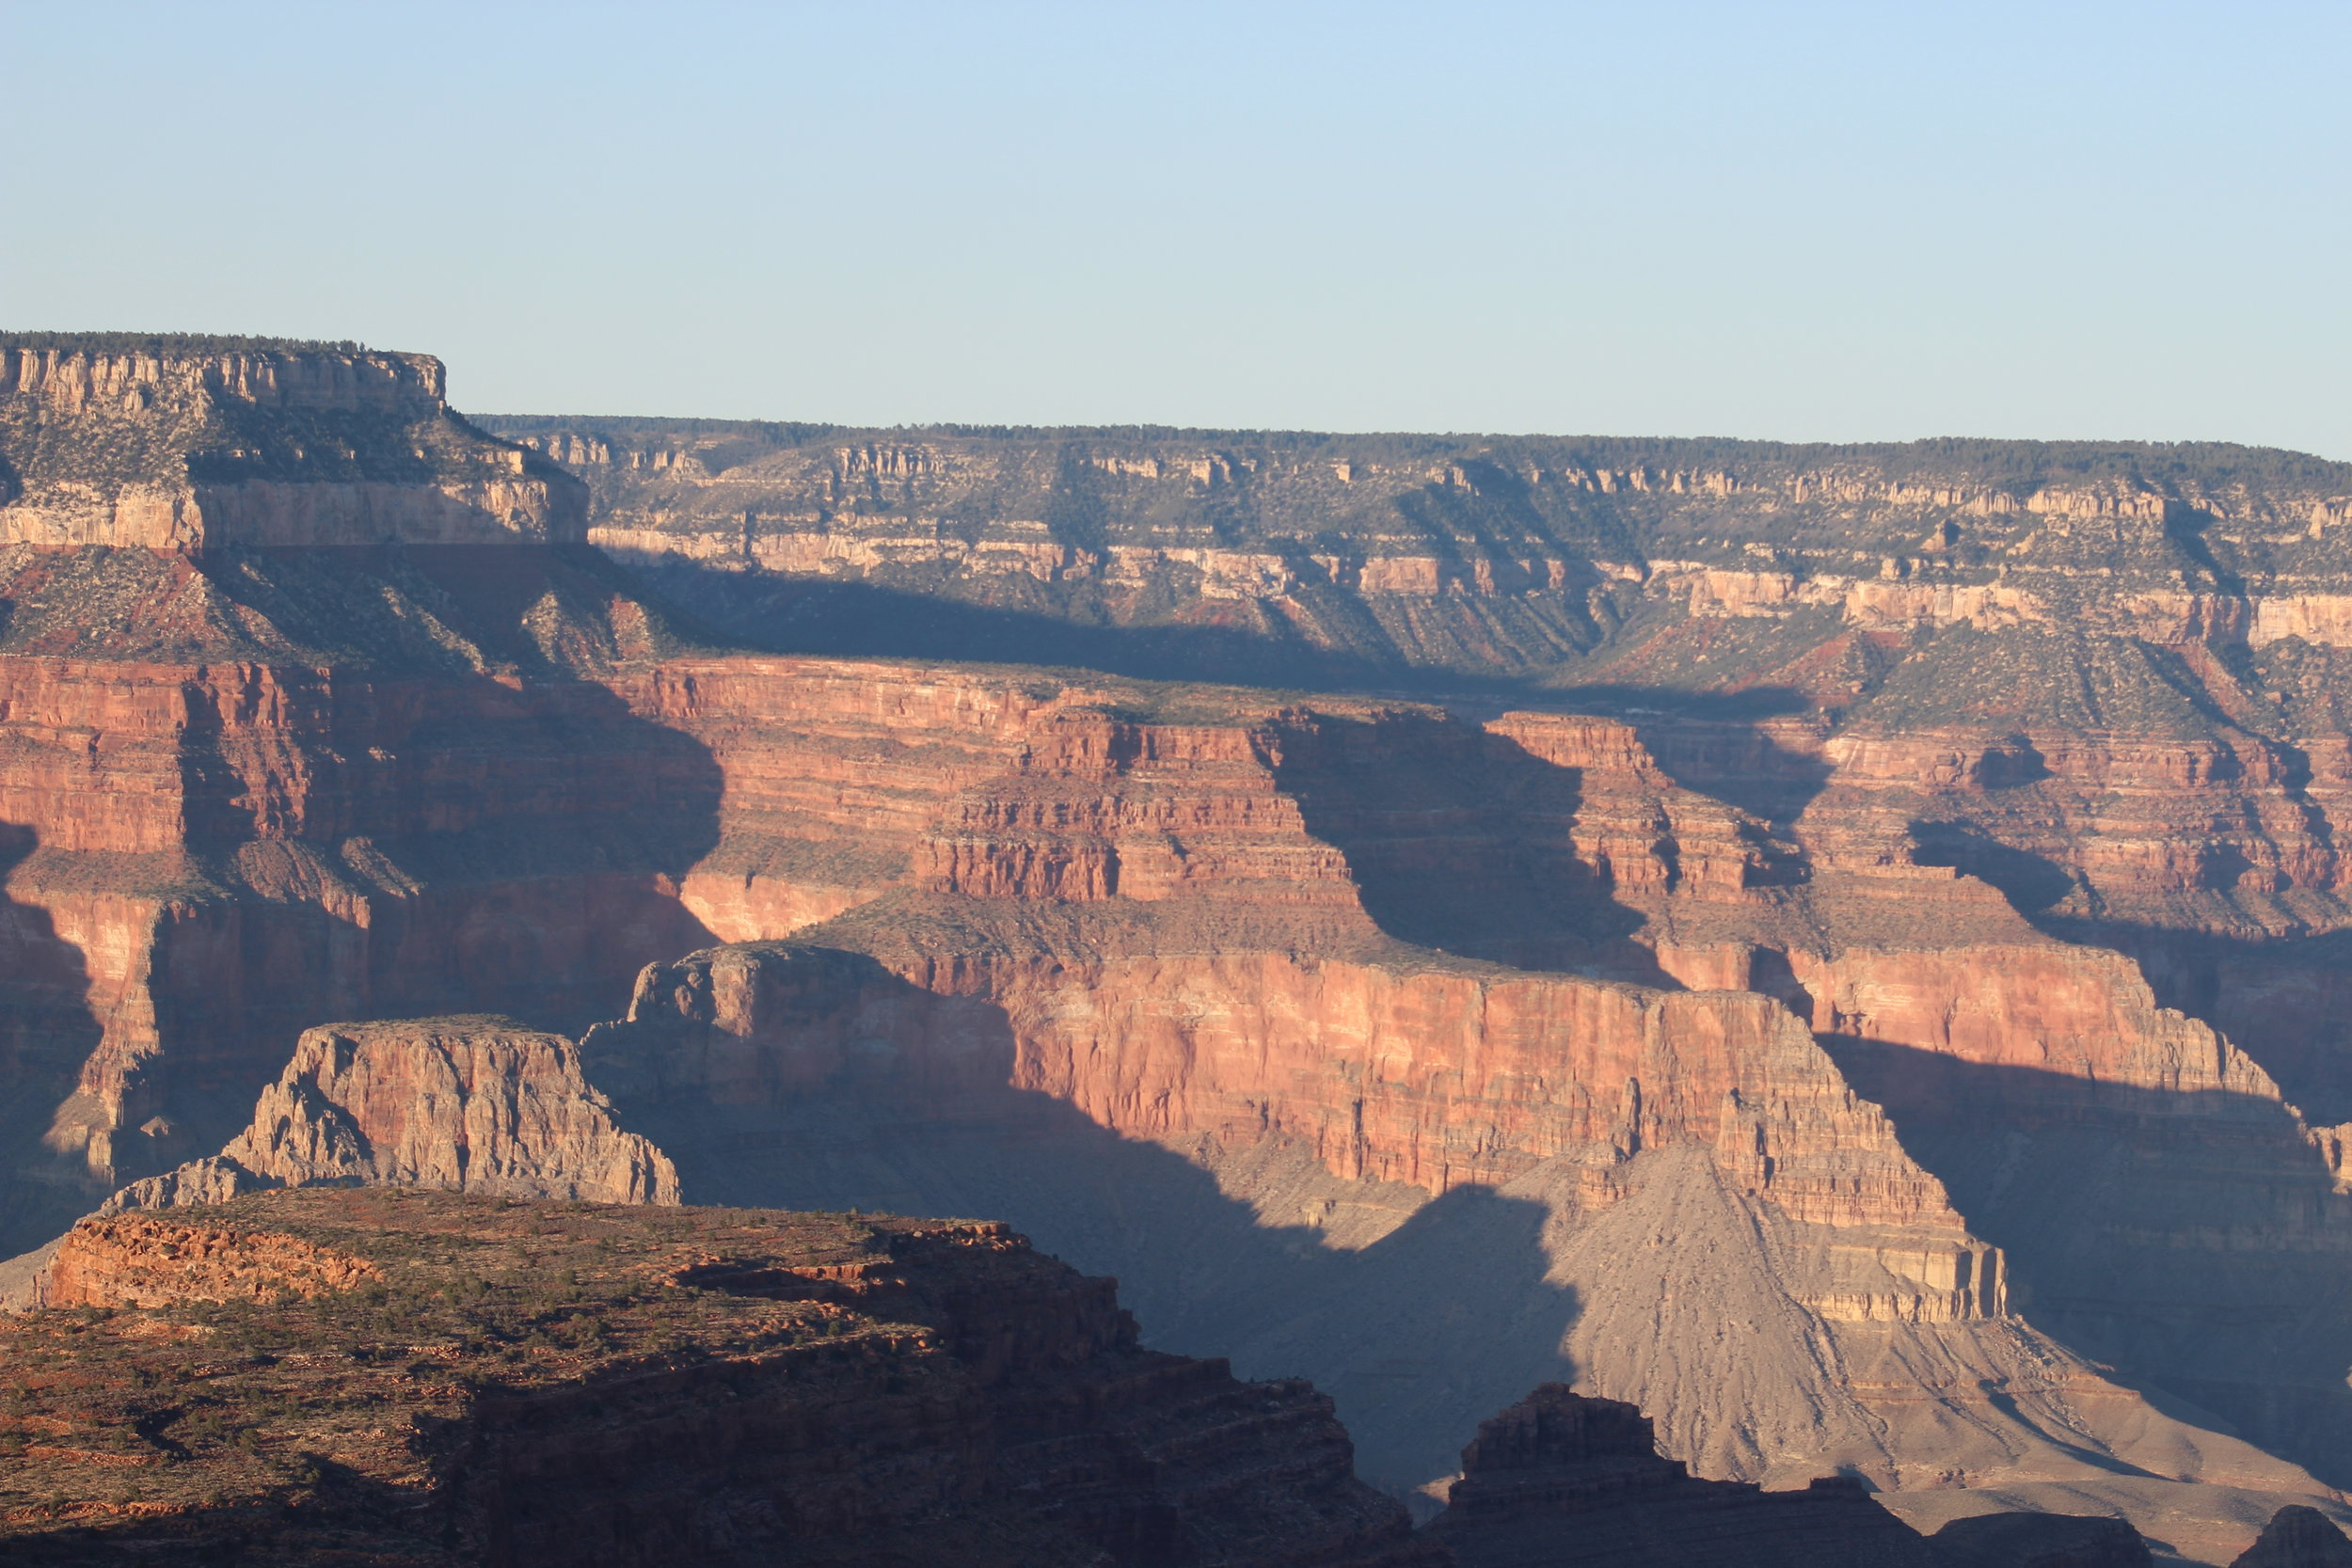 The reliably beautiful sunset at Grand Canyon